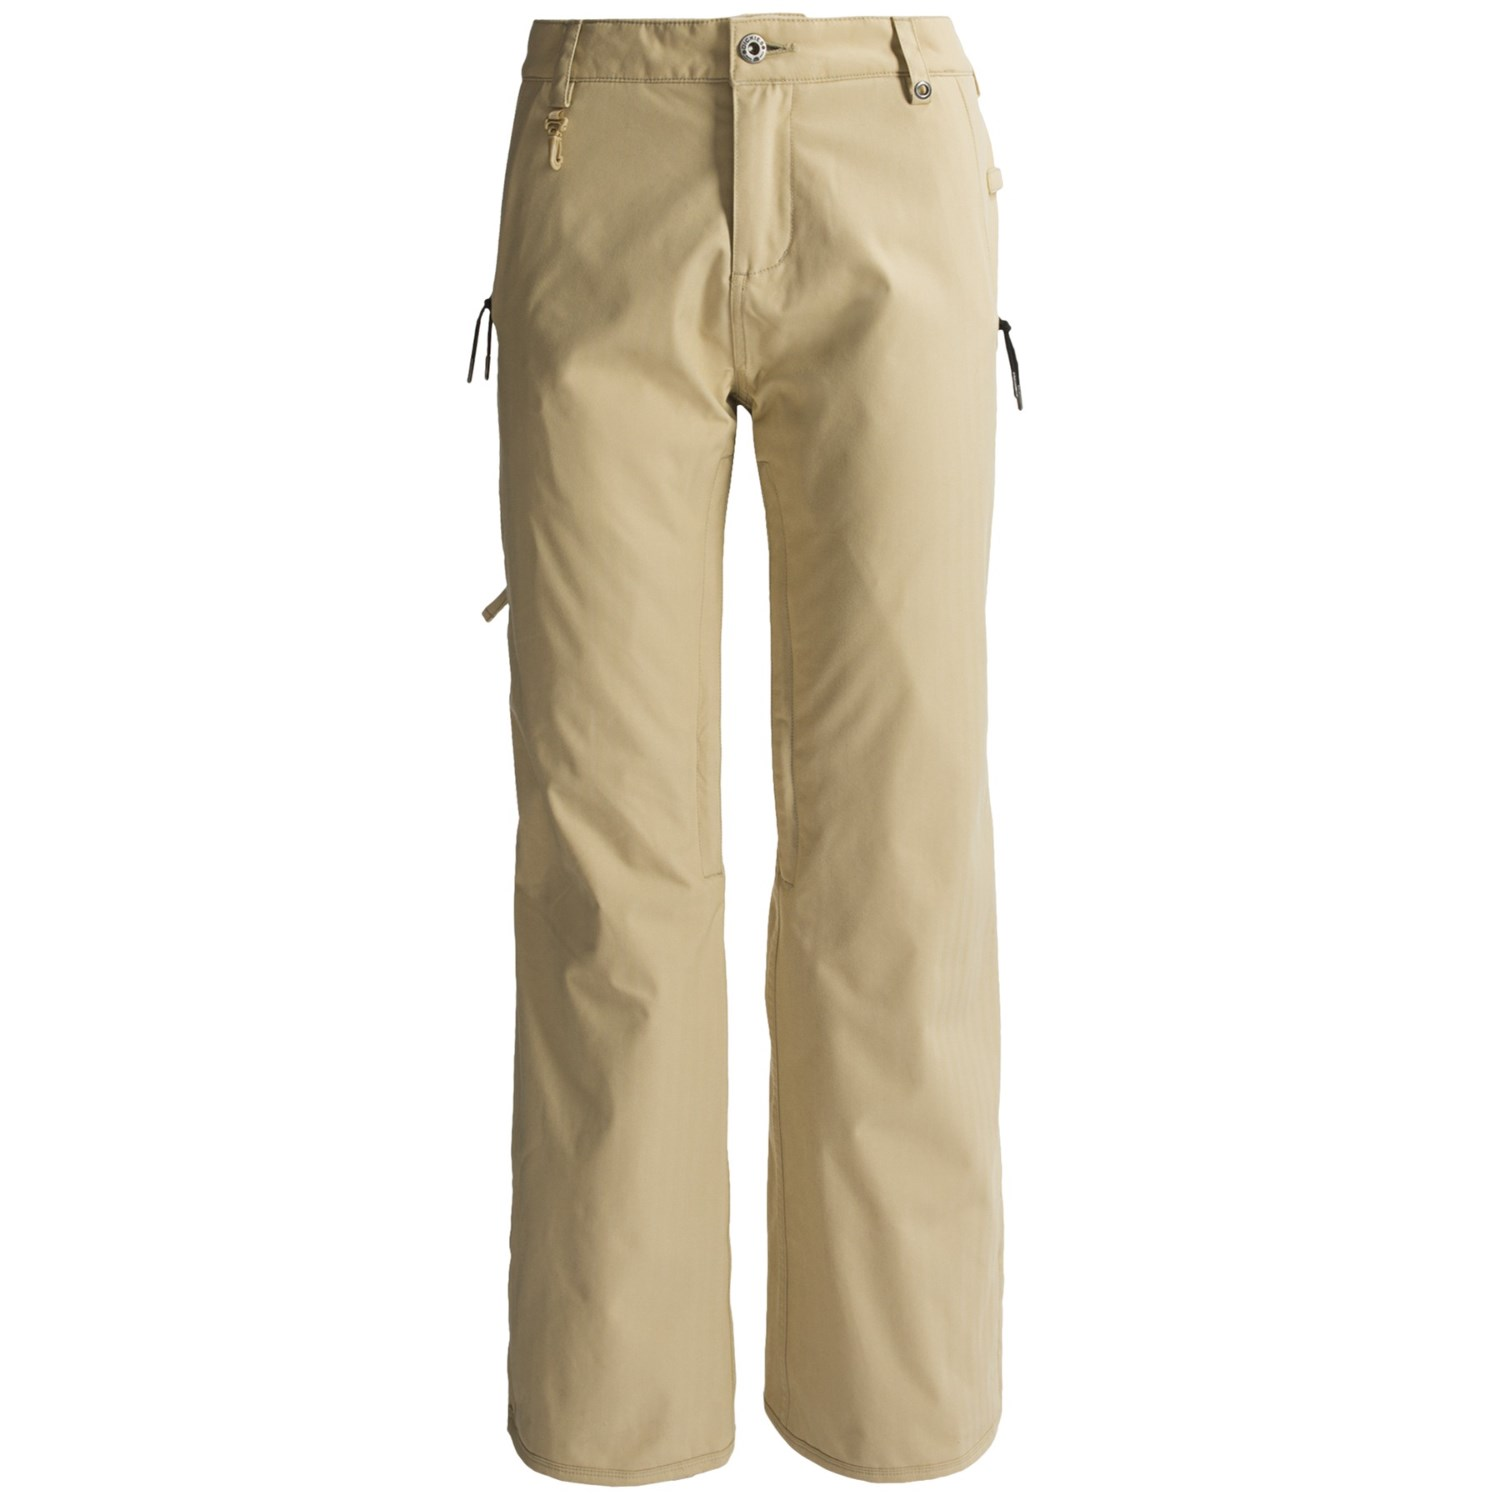 Creative If Youre Looking For Womens Fall Fashion Trends  Making Highrise Pants Both Classic And Trendy These Khaki Pants From Michael Bastian Are Comfortable, While Also Being Work Appropriate With An 11inch Rise And 14inch Leg Opening